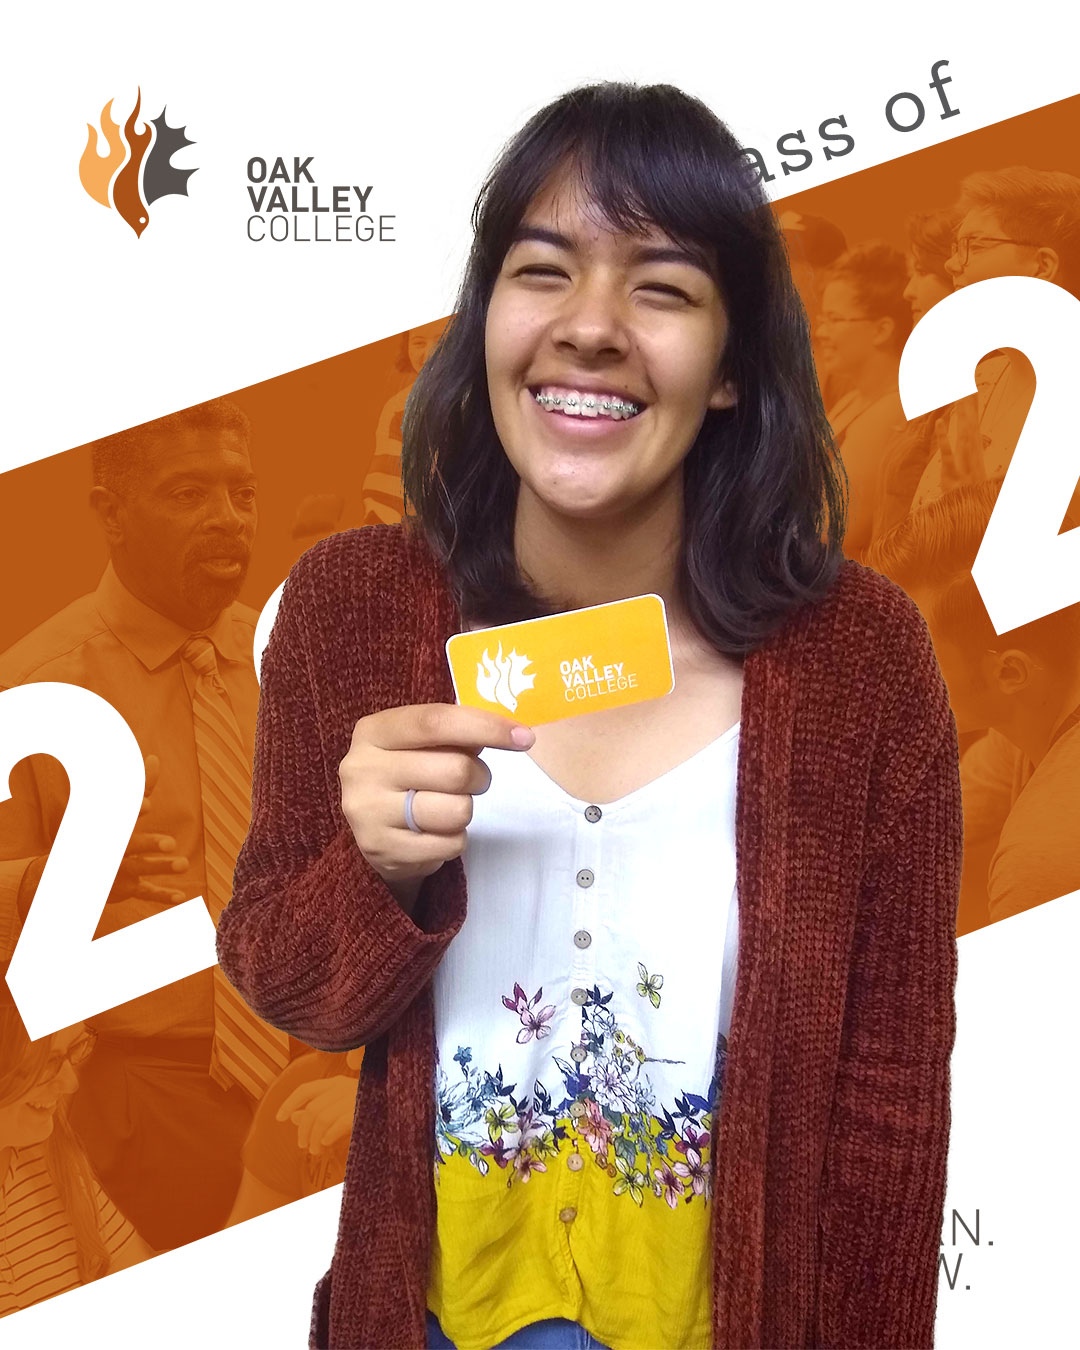 Crystal Arriaga is one of 32 students to enroll as a freshman for the fall of 2019.